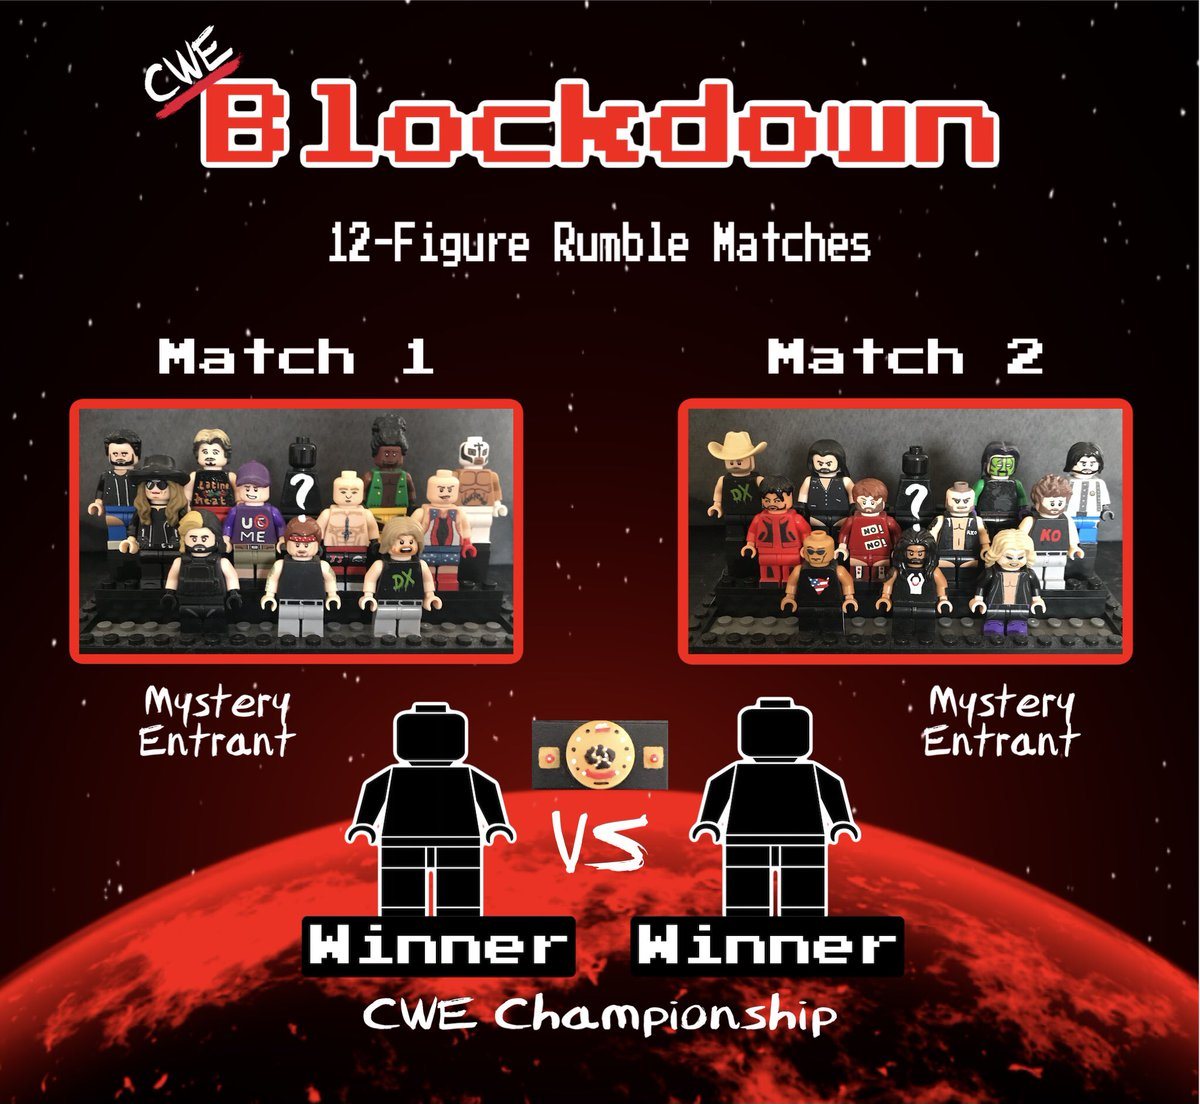 Episode 1 of Blockdown is now on @YouTube! Find out who will be challenging for the CWE Championship next week    #LEGO #StopMotion #stopmotionanimation #YouTubers #youtuber #YouTuber #subscribers #wrestling #WWE #WrestlingCommunity #WrestlingTwitter